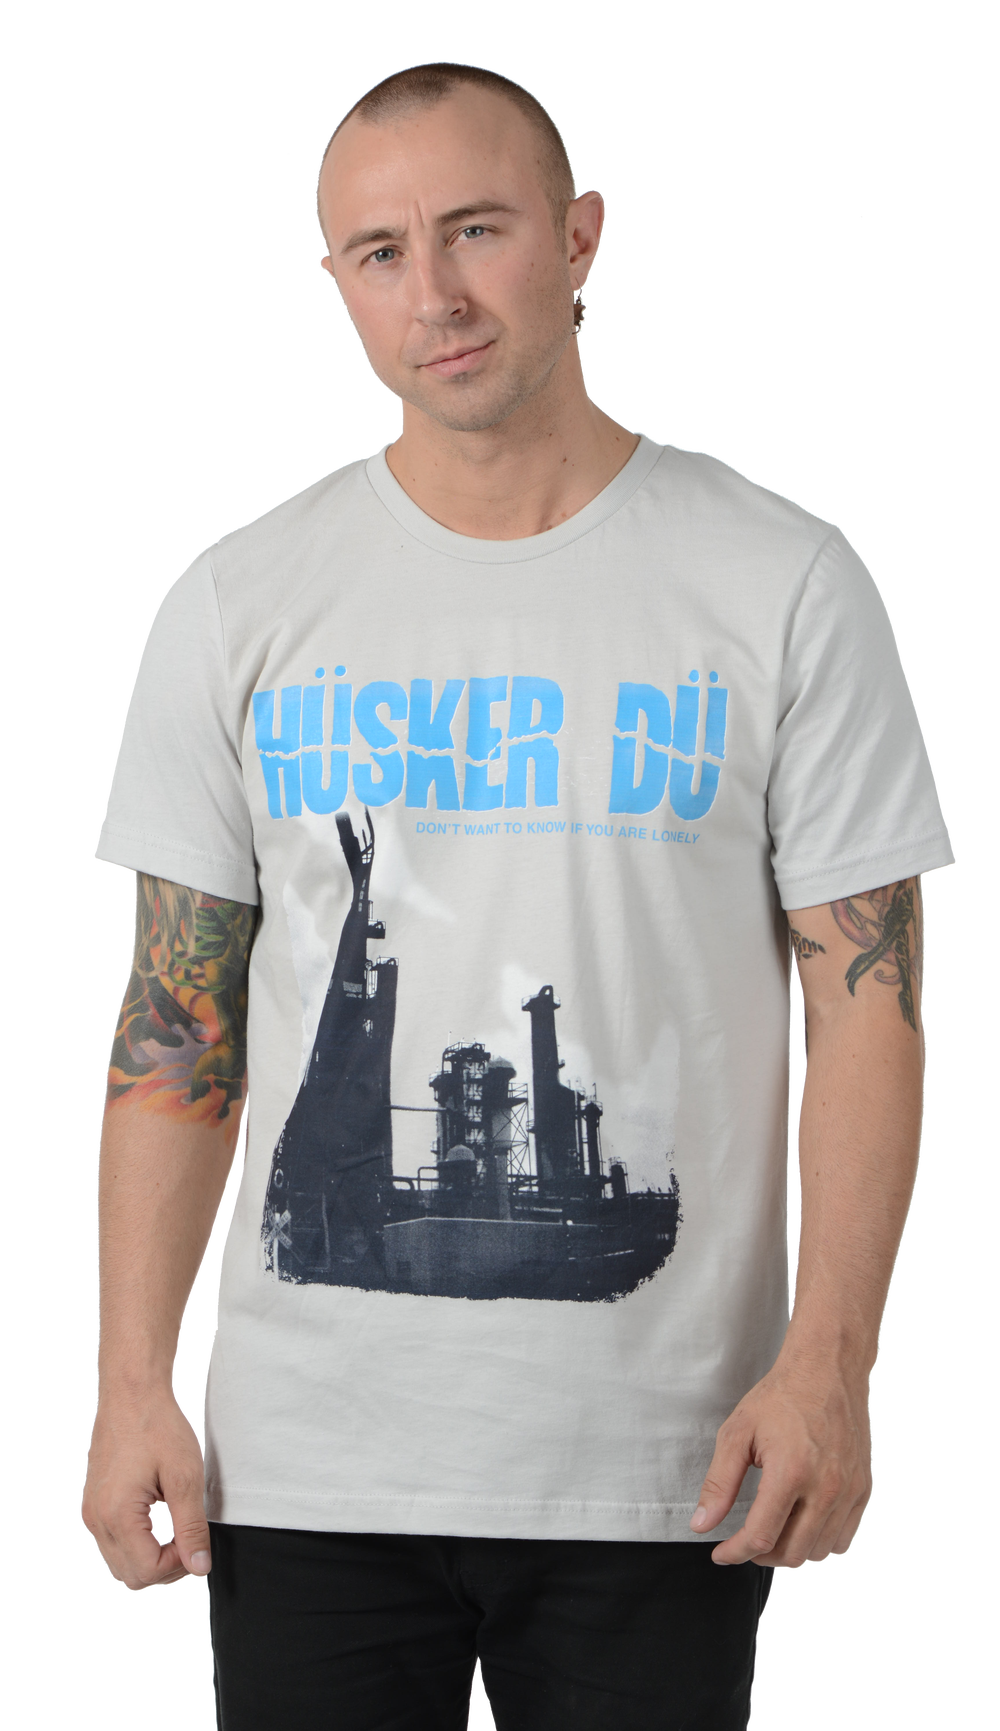 """Image of HÜSKER DÜ """"DON'T WANT TO KNOW IF YOU ARE LONELY"""" T-SHIRT"""